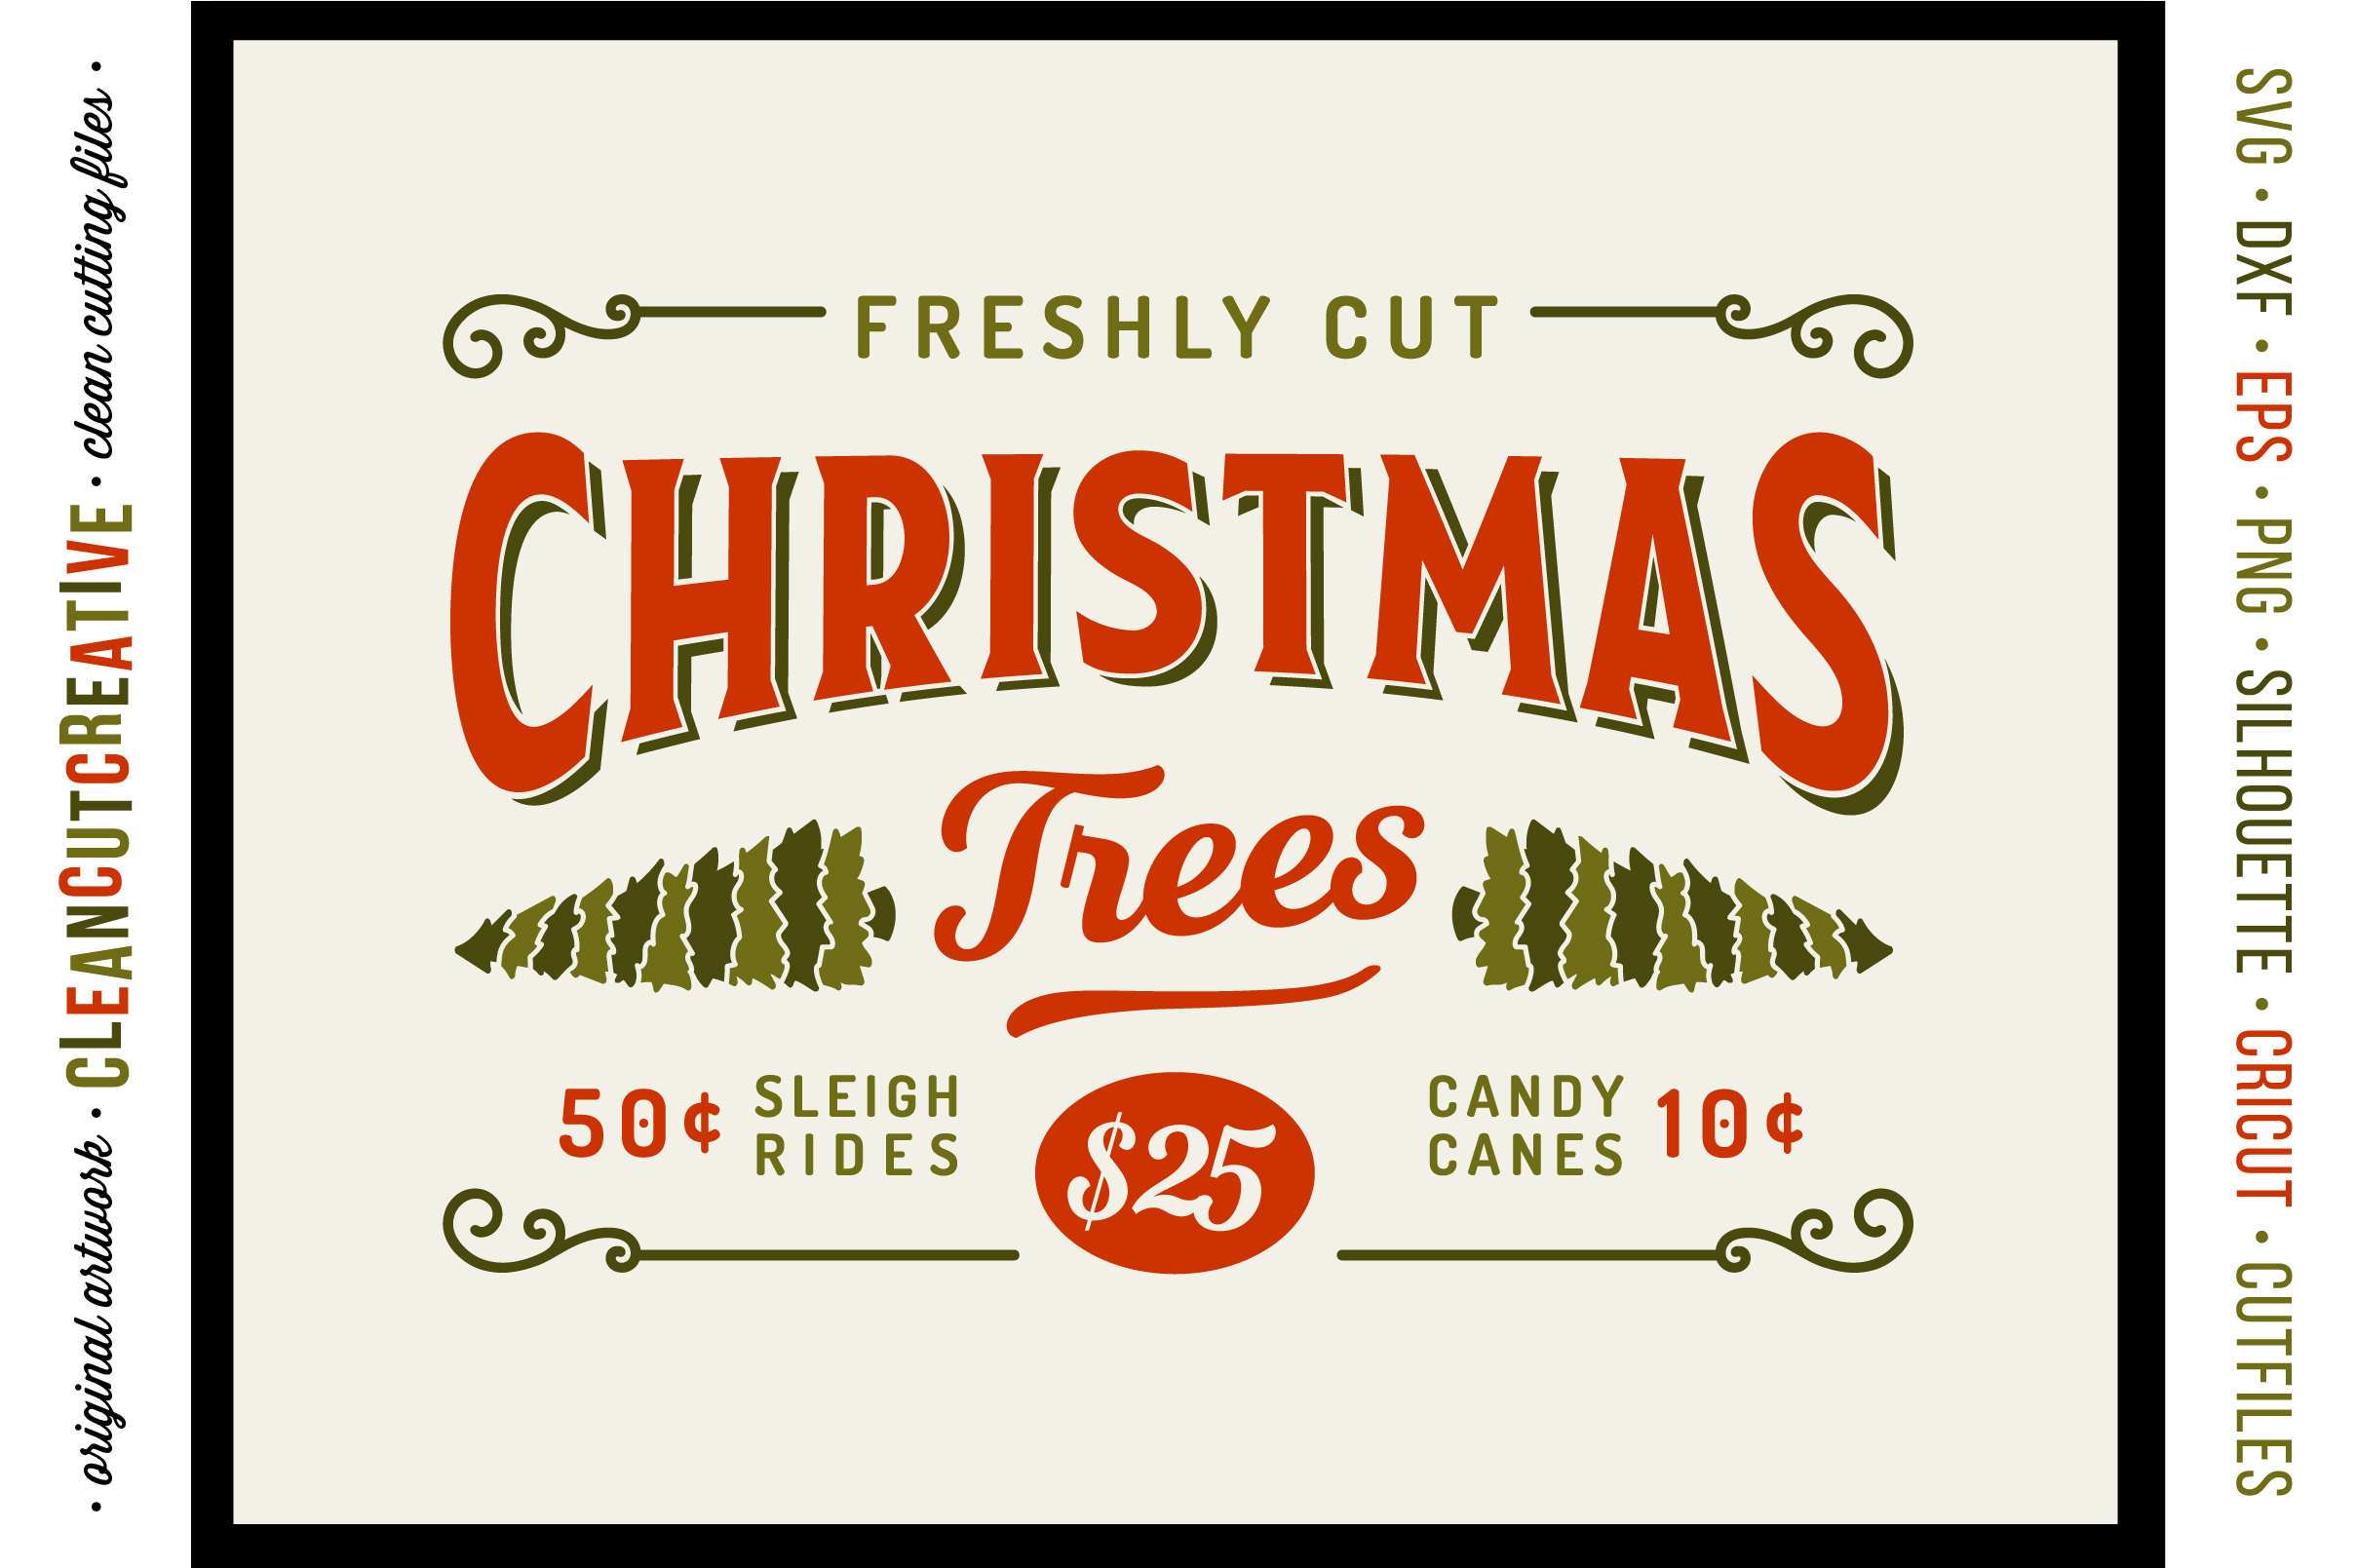 Freshly Cut Christmas Trees! - Rustic Farm Wood Sign - SVG DXF EPS PNG - Cricut & Silhouette - clean cutting files example image 1